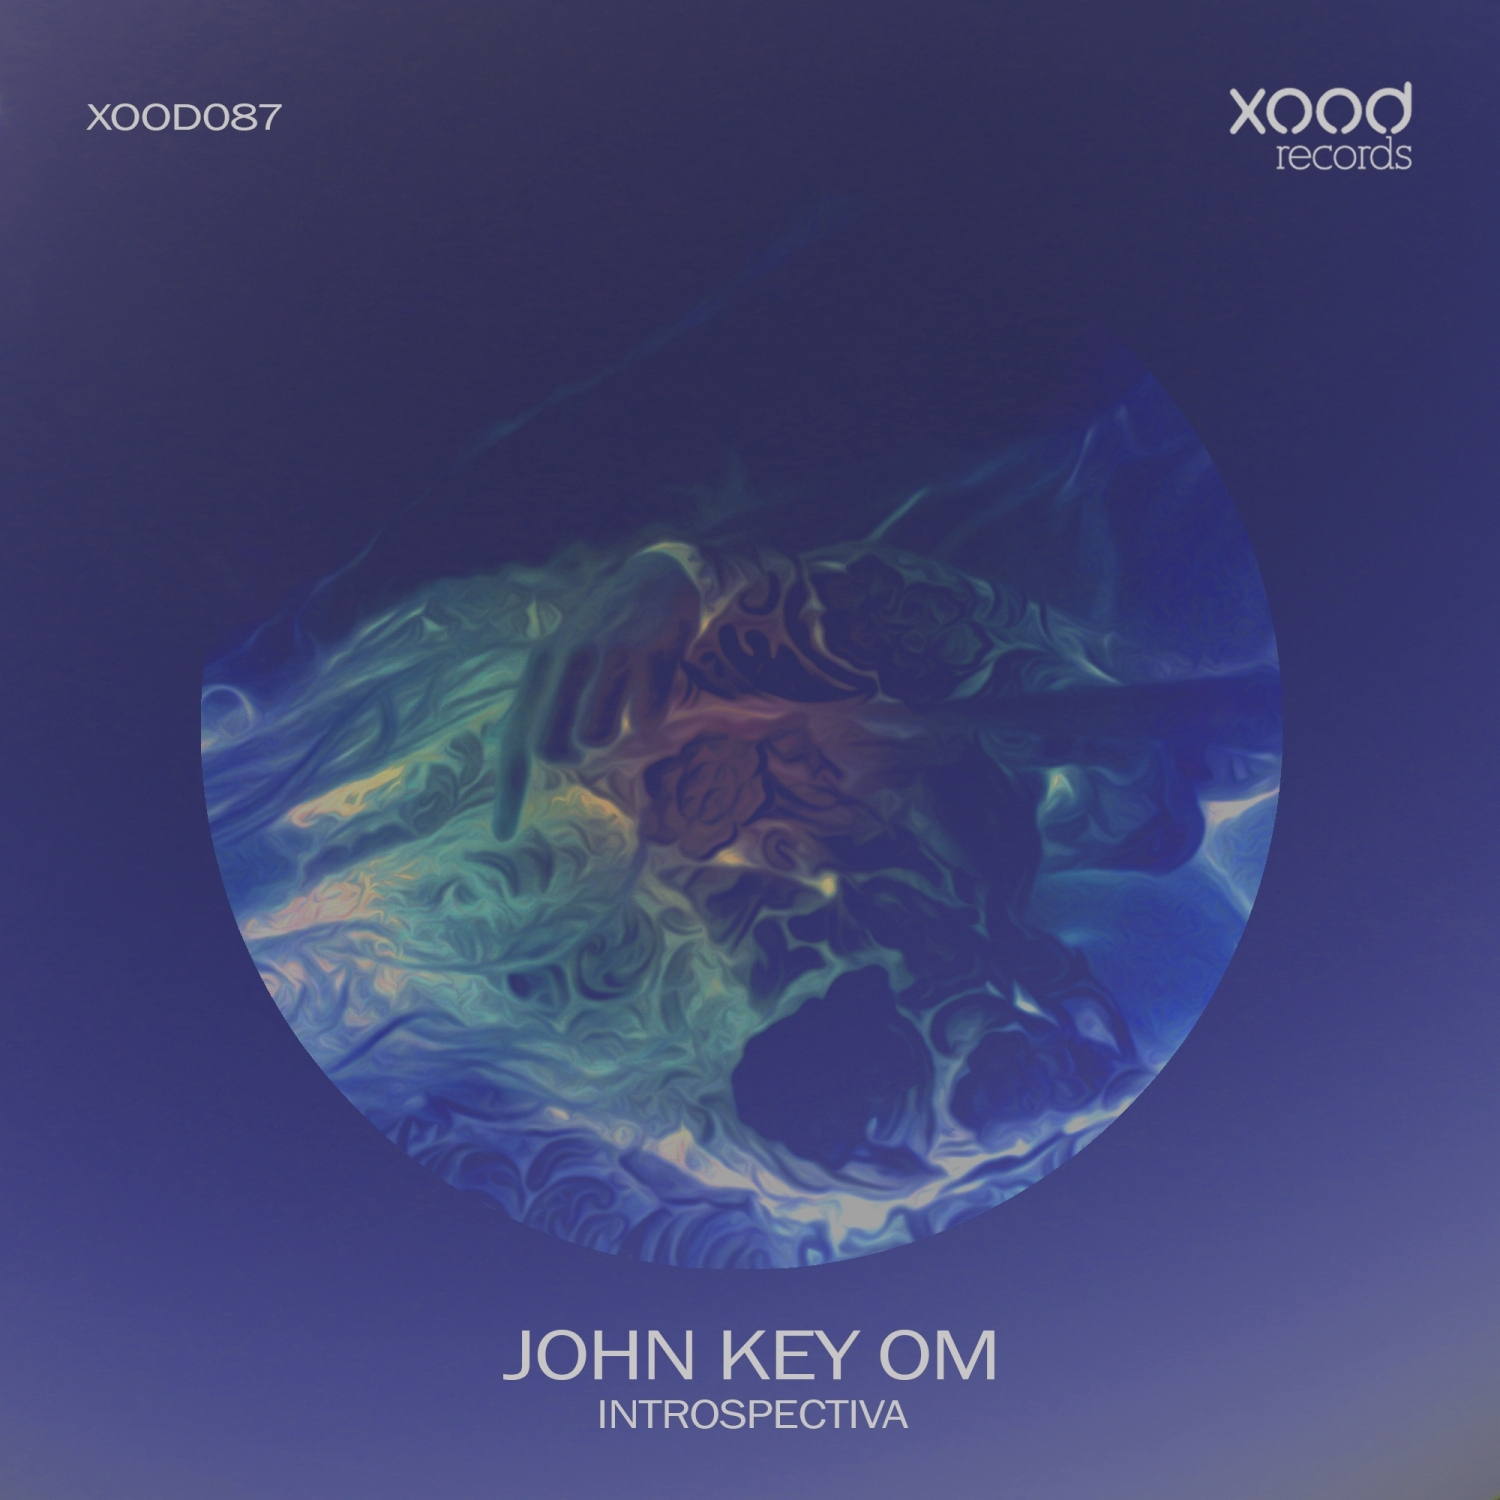 John Key Om - Introspectiva  (Original Mix)